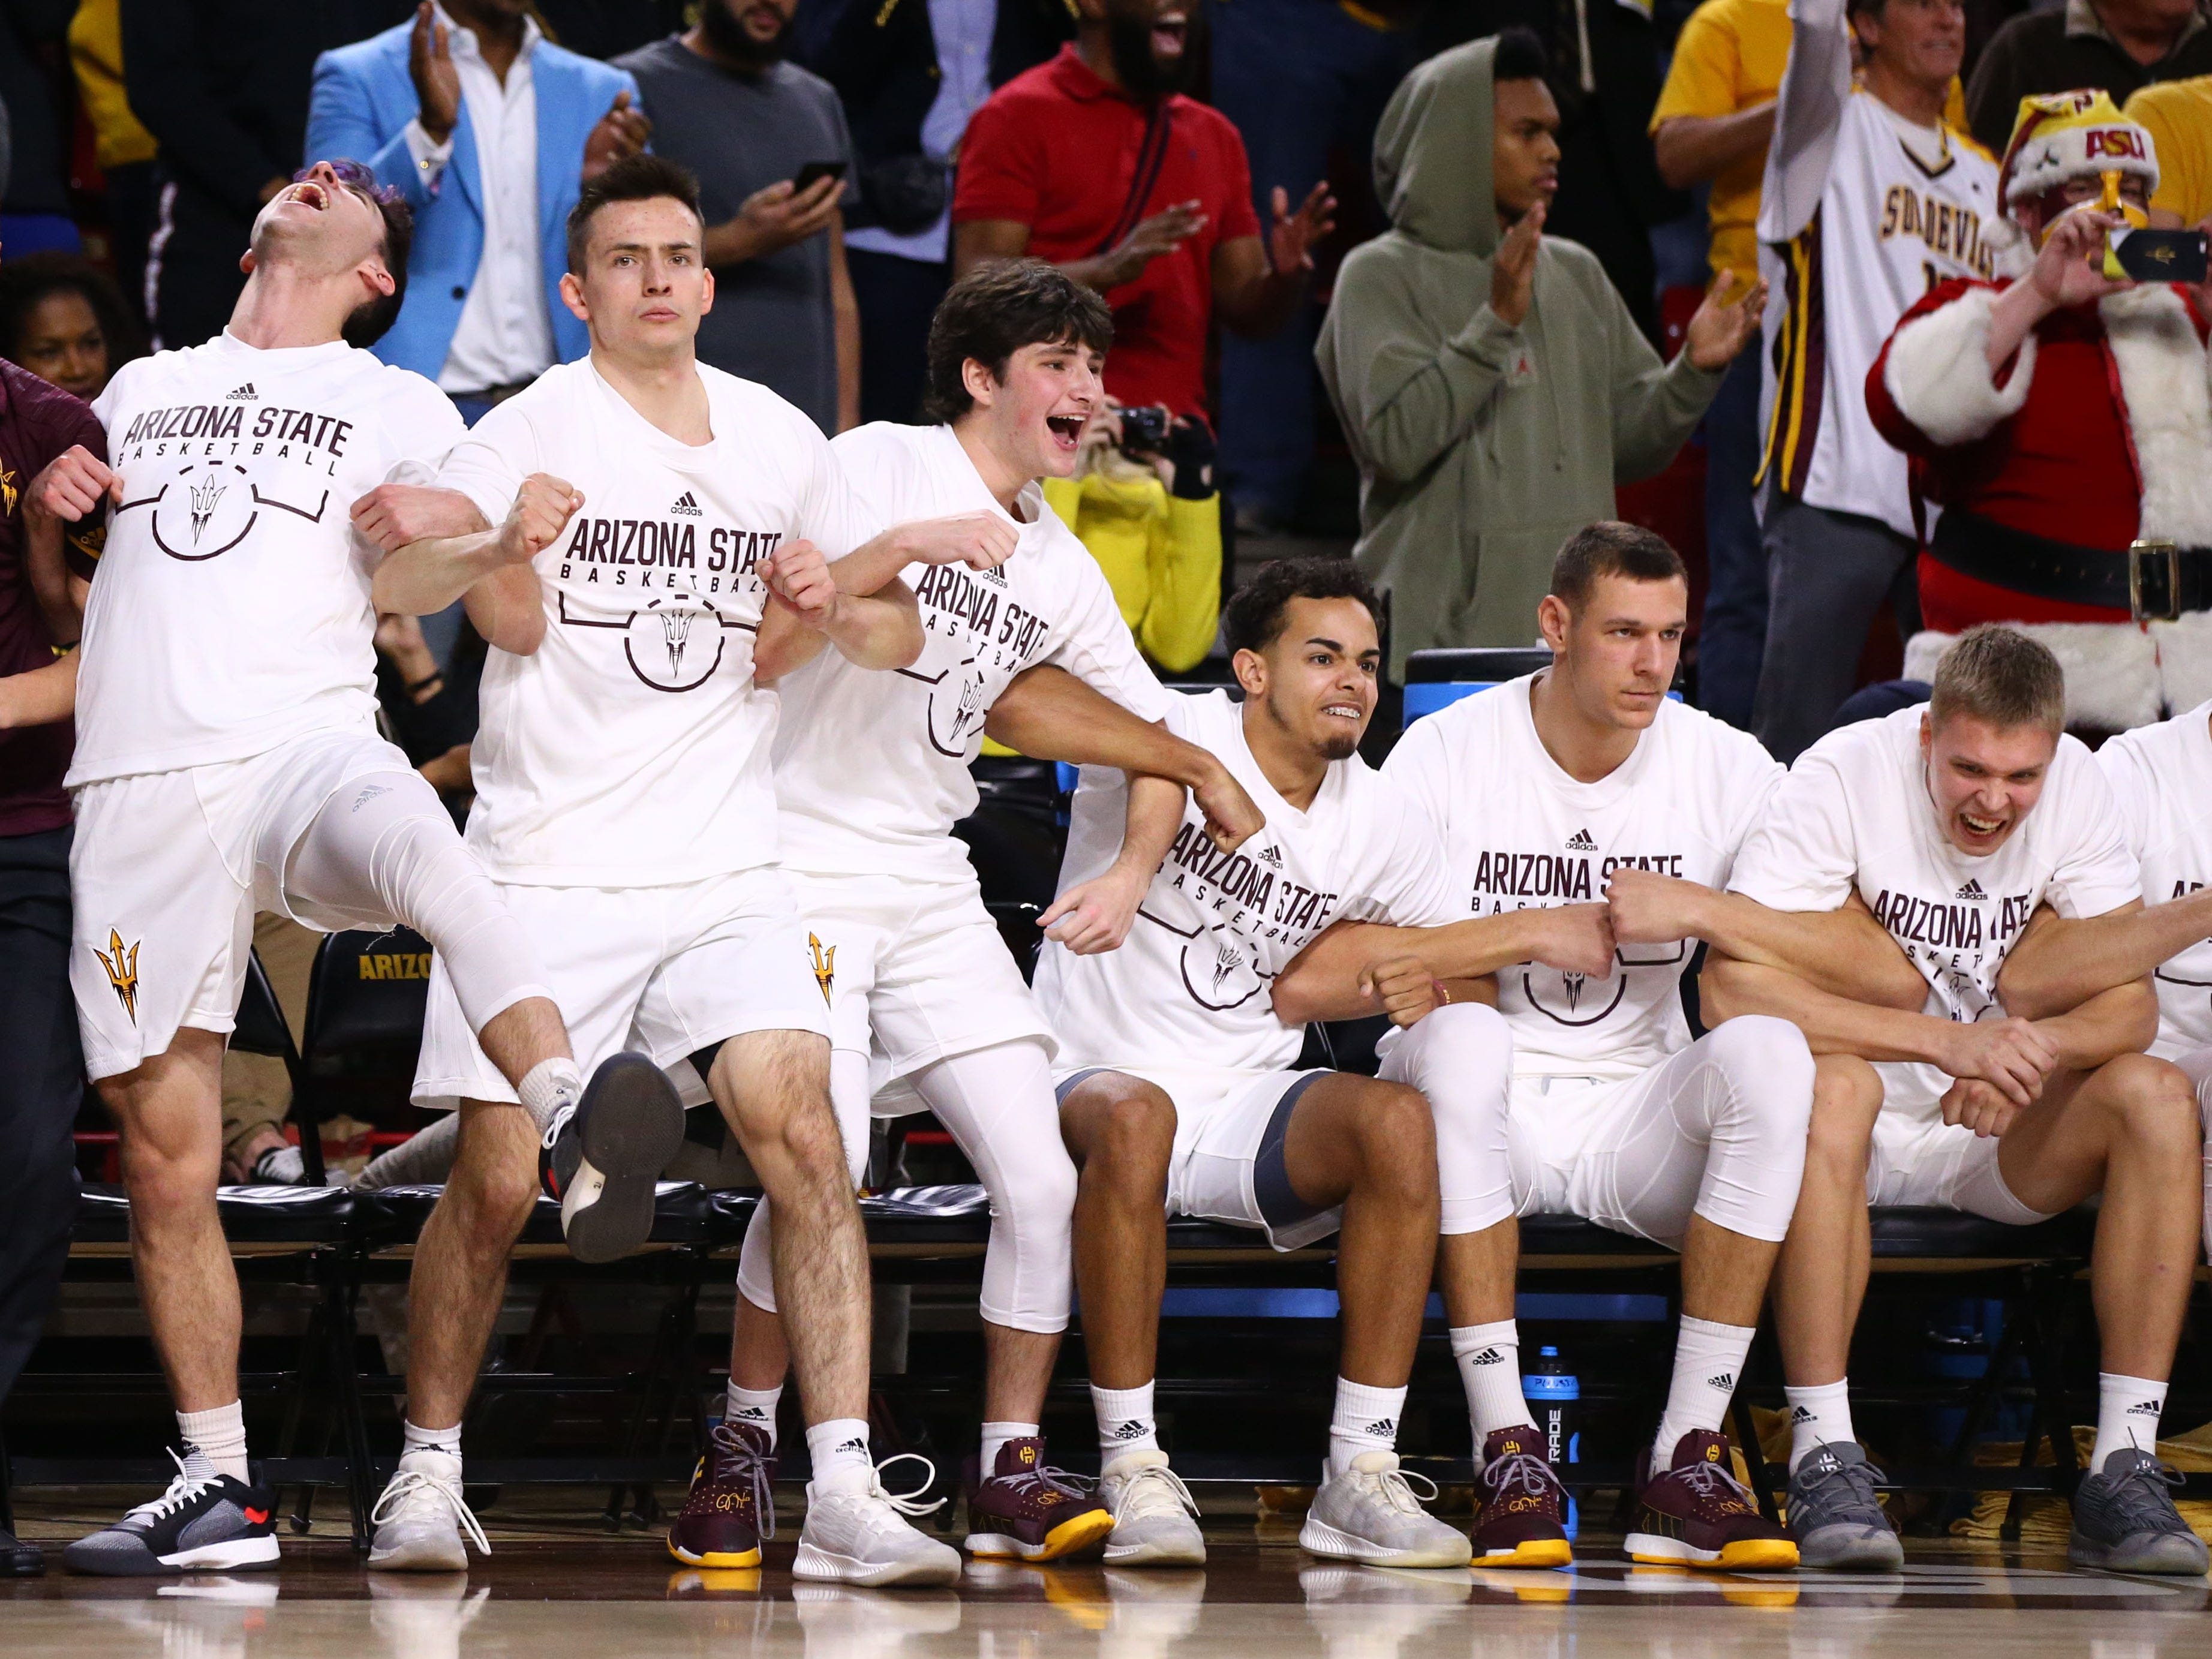 The Arizona State bench celebrates their comeback win over Kansas on Dec. 22 at Wells Fargo Arena.